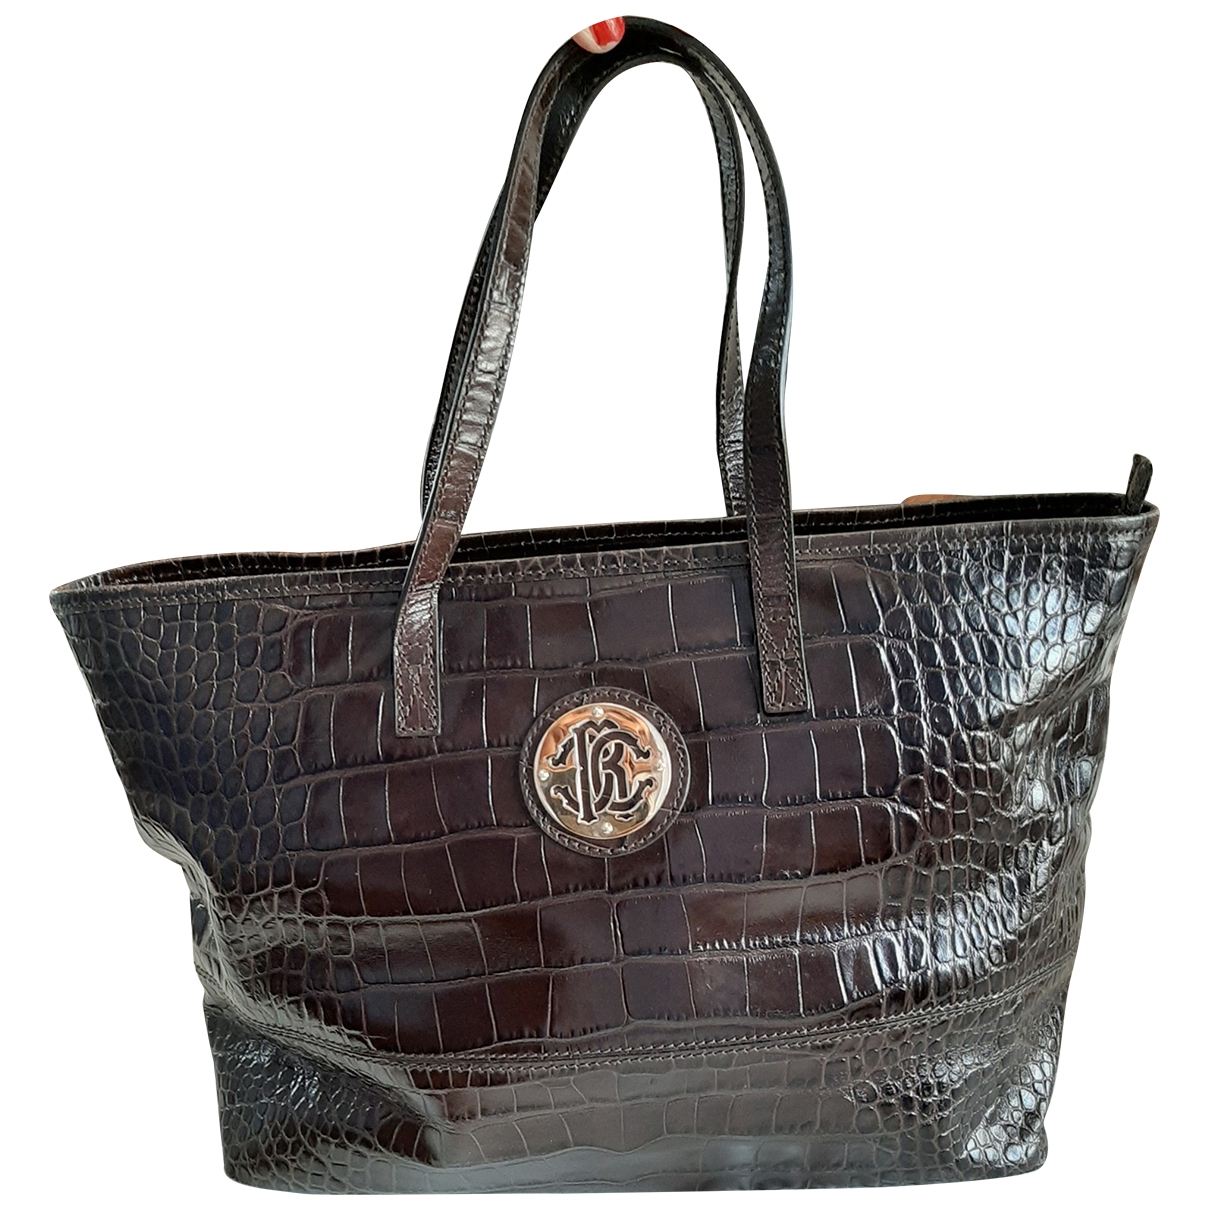 Roberto Cavalli \N Brown Leather handbag for Women \N